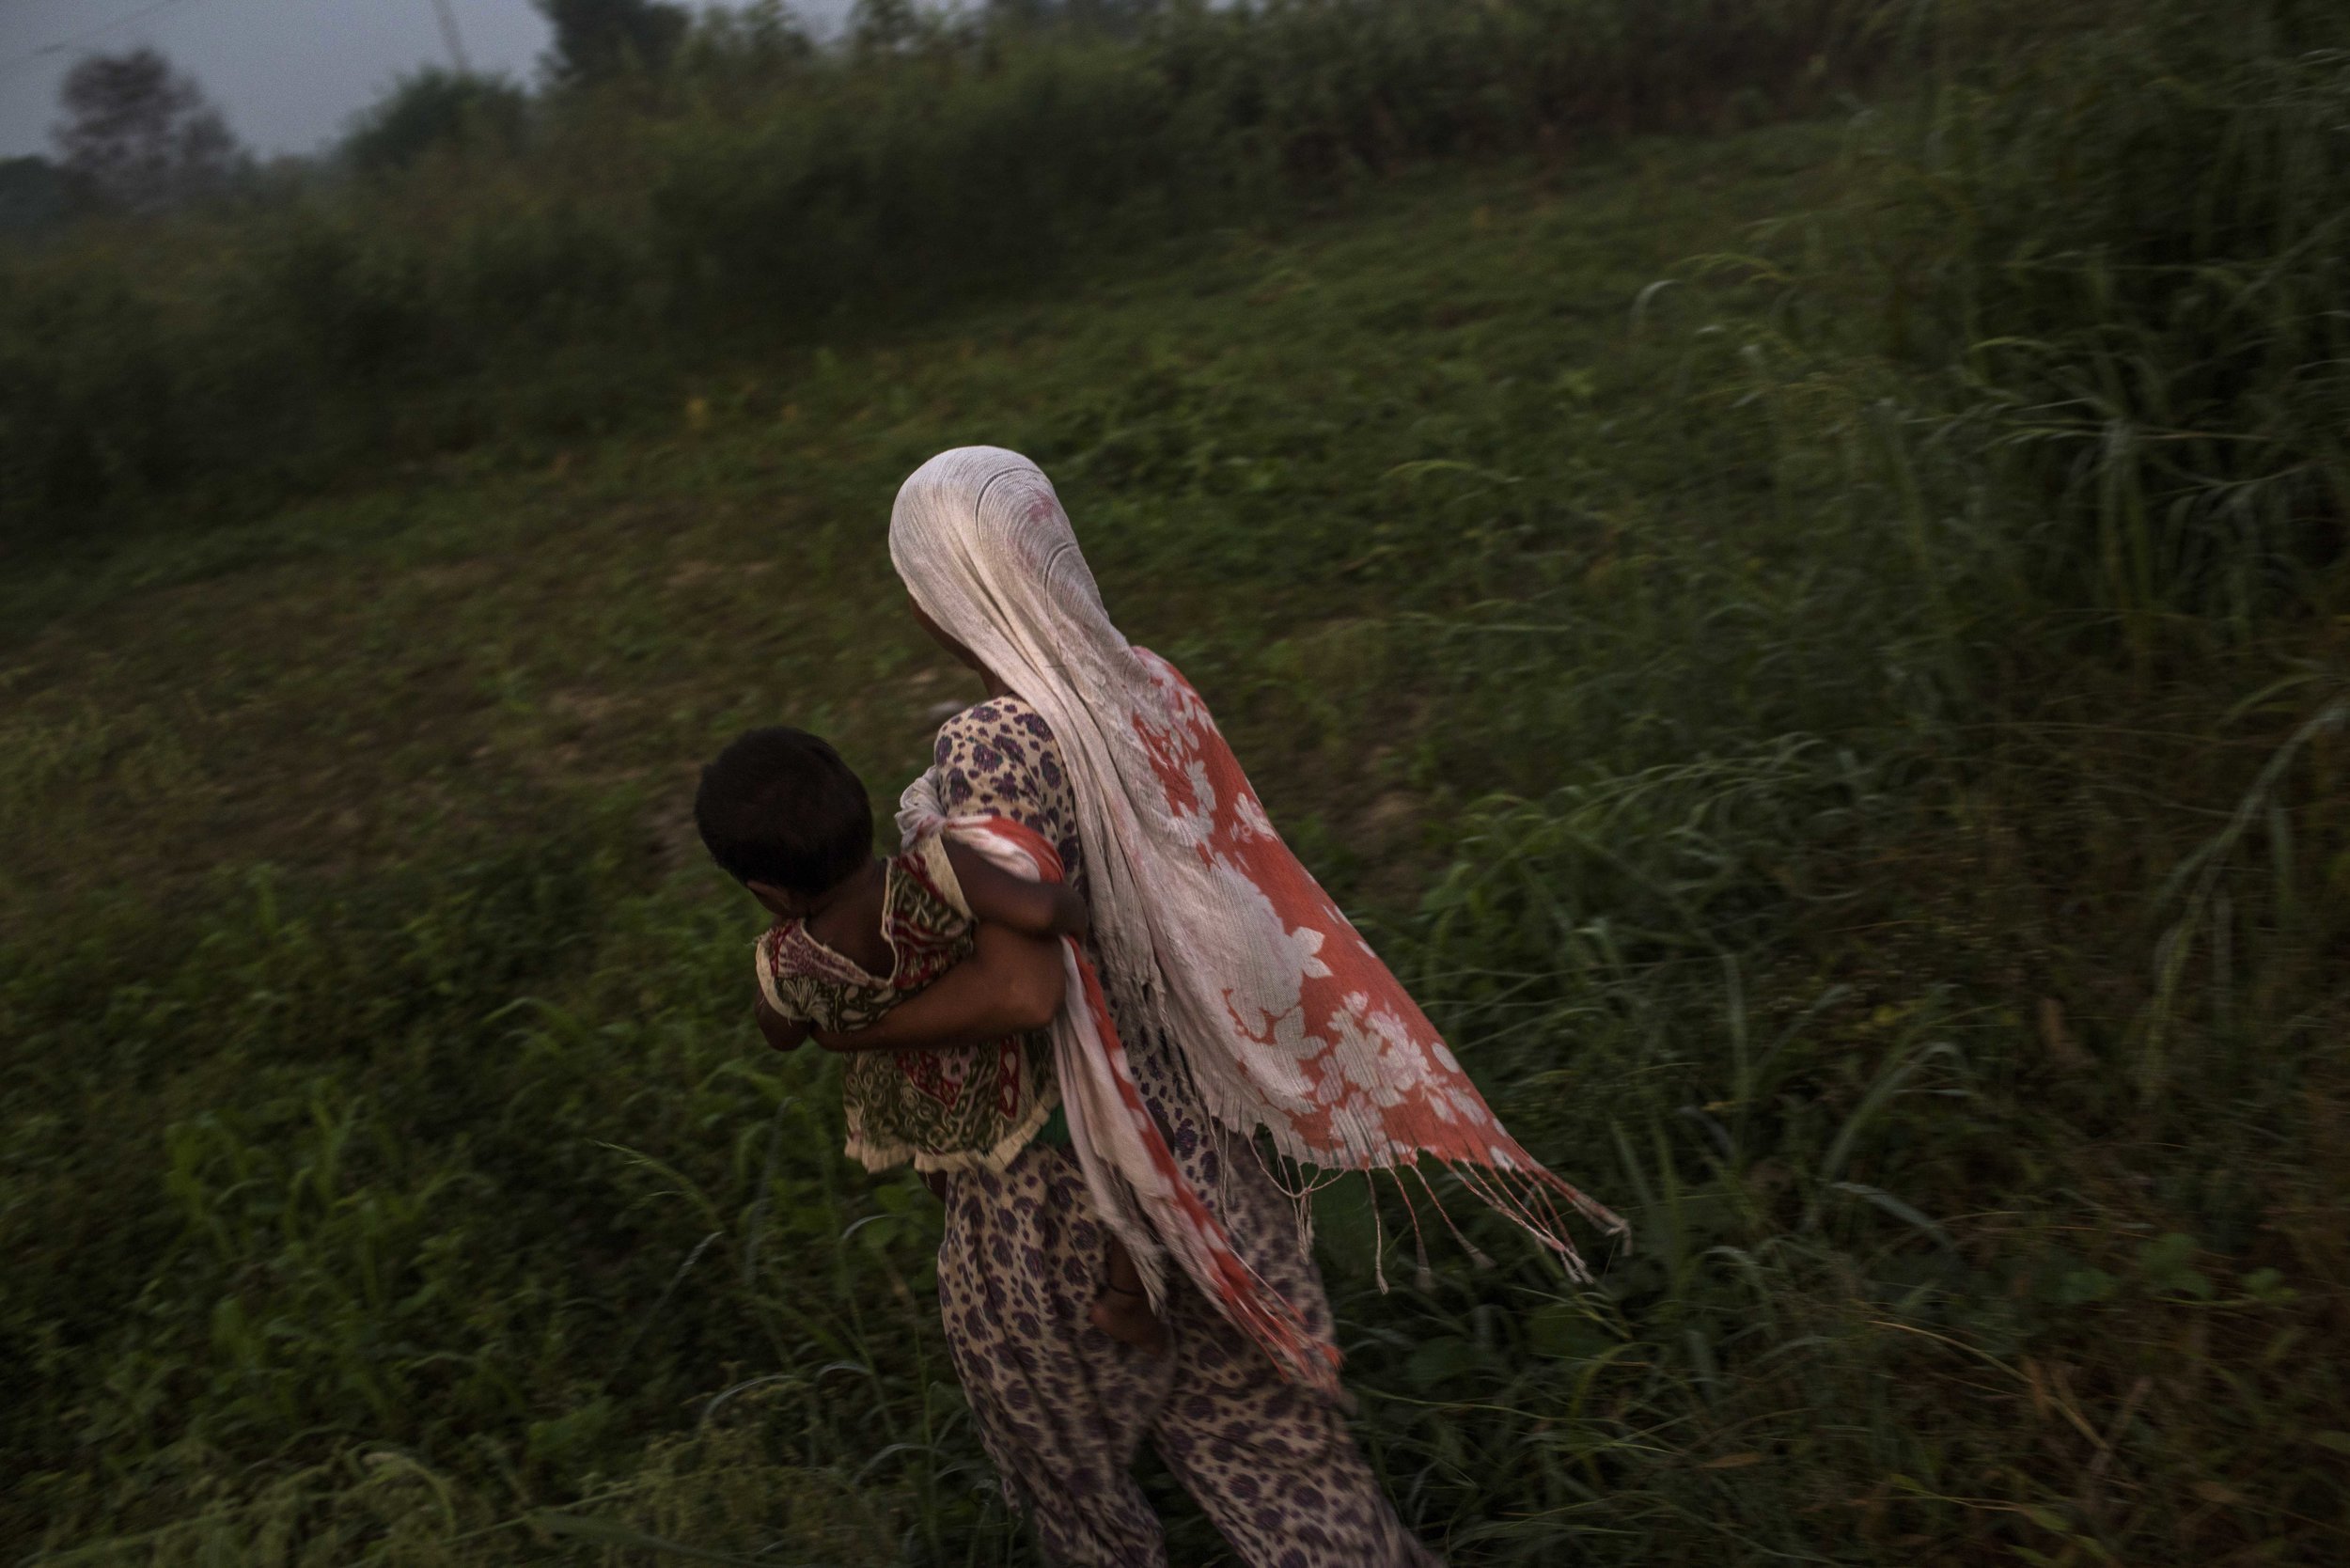 India, Peepli Kheera, 24 September 2016, A woman walks to the outdoor area where she goes to relief herself.